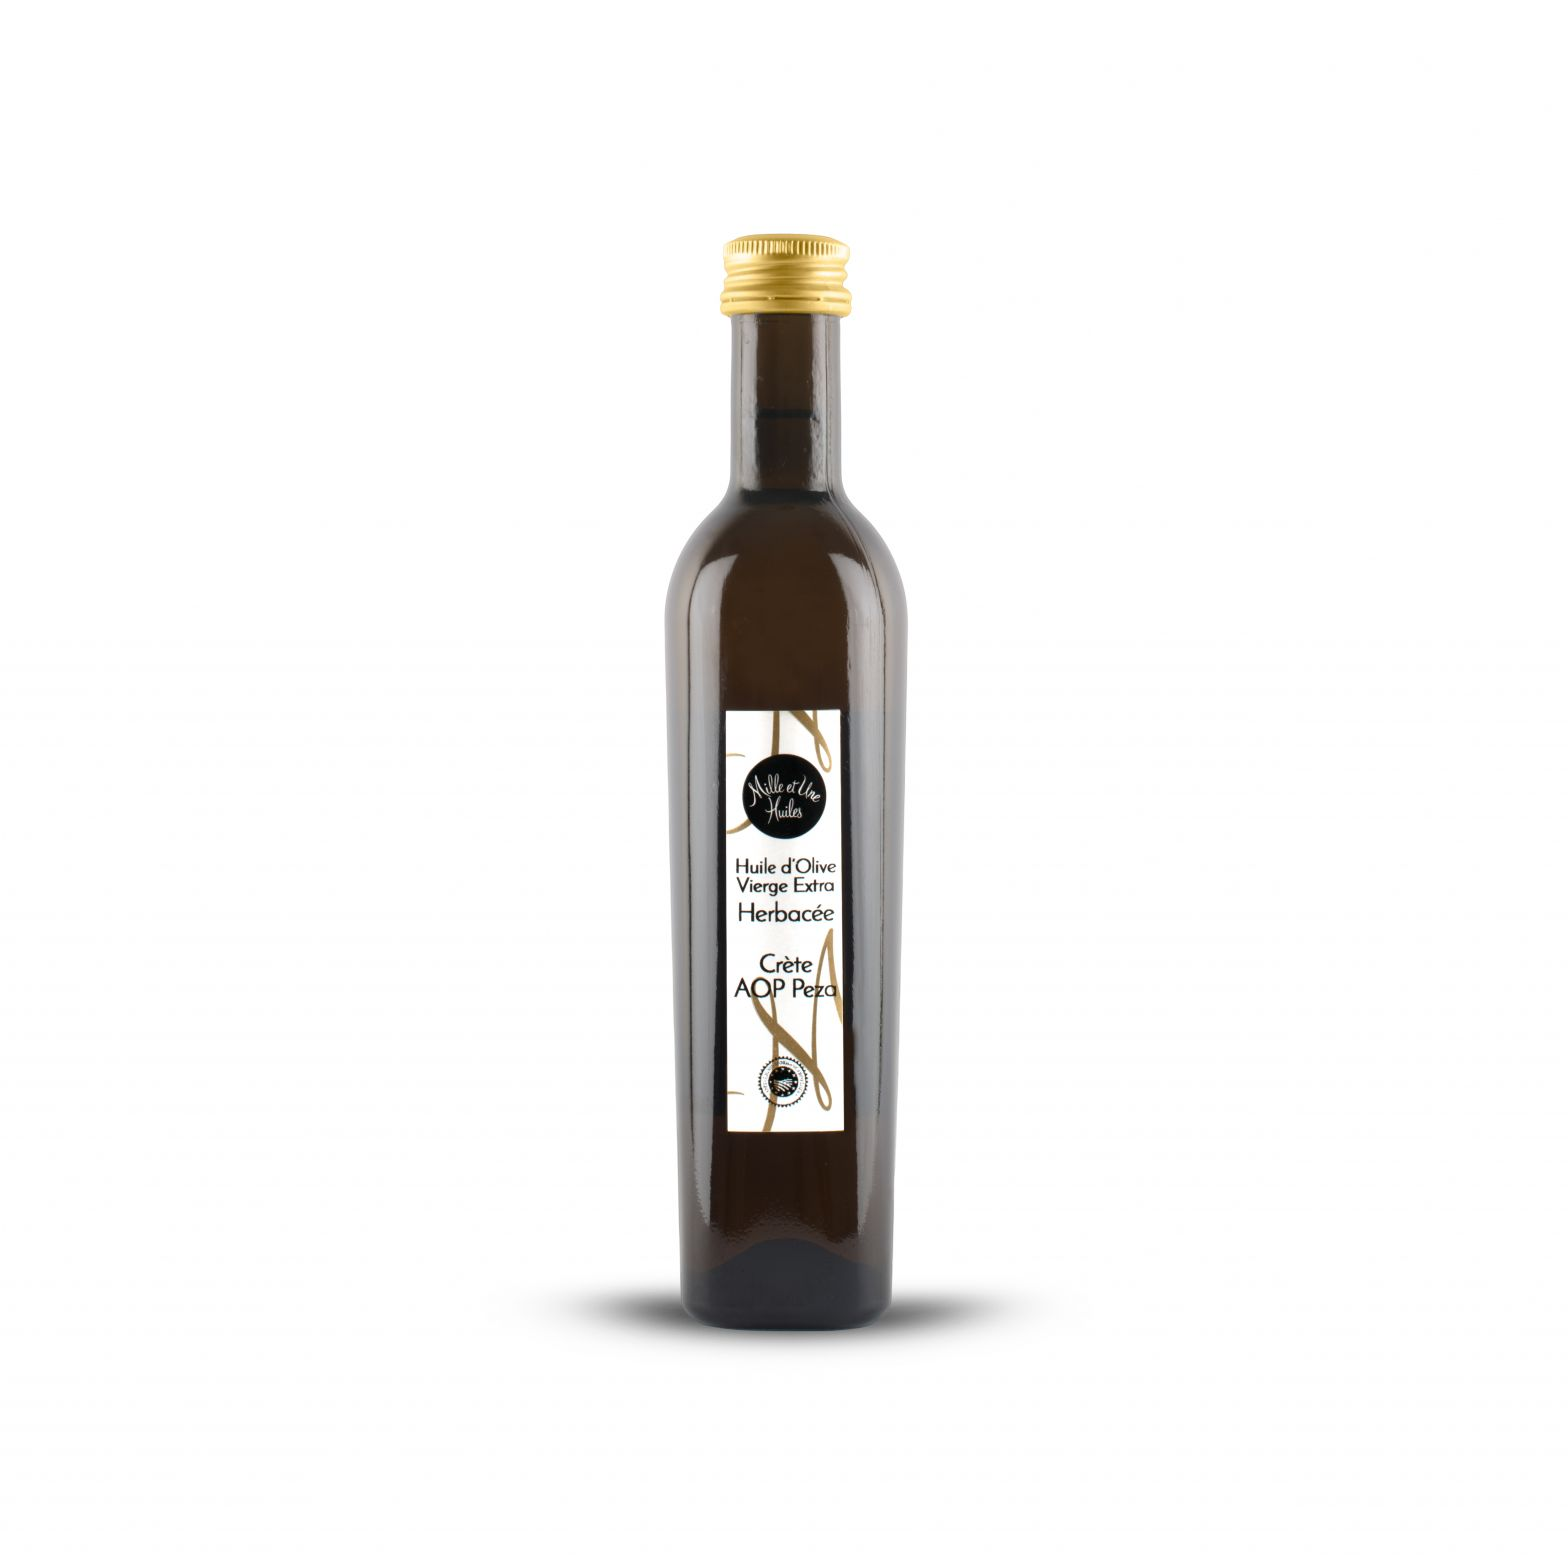 Extra virgin olive oil - Green Selection - Creta AOP Peza